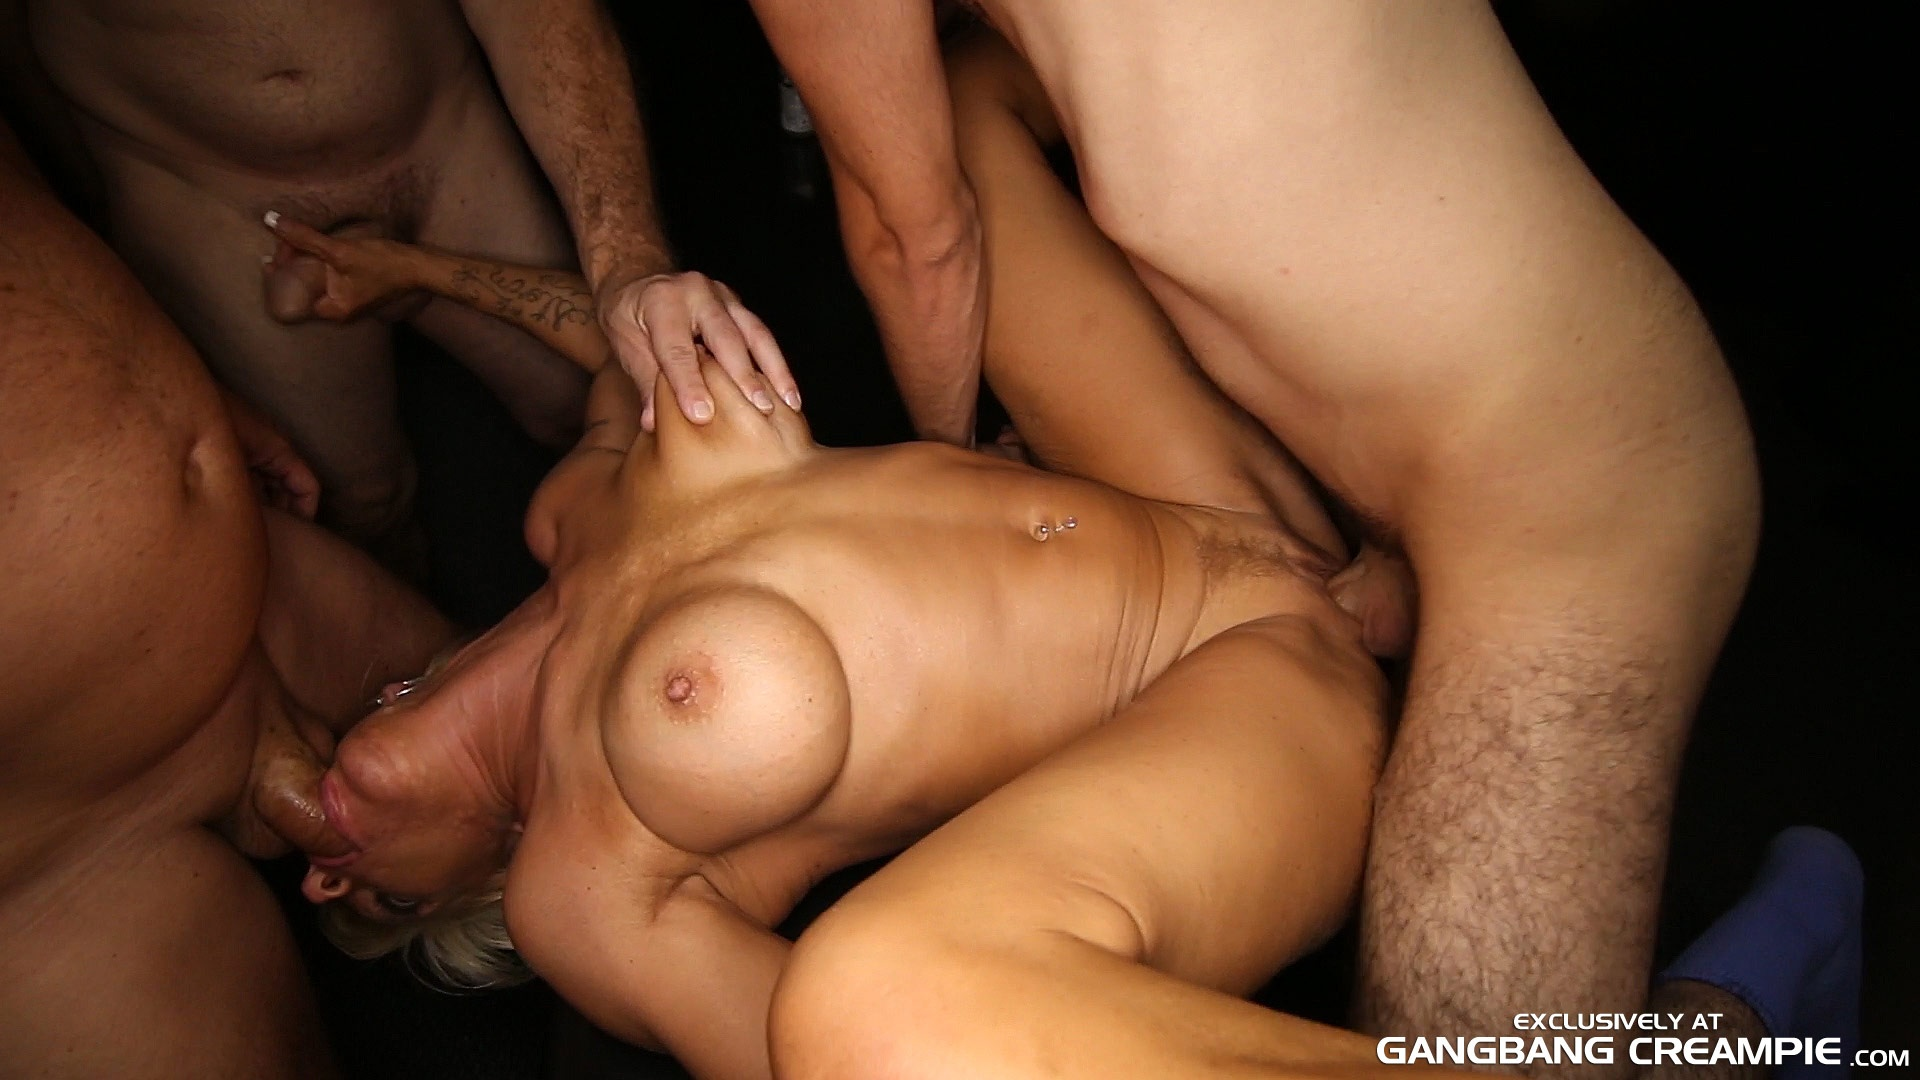 creampie gang bang